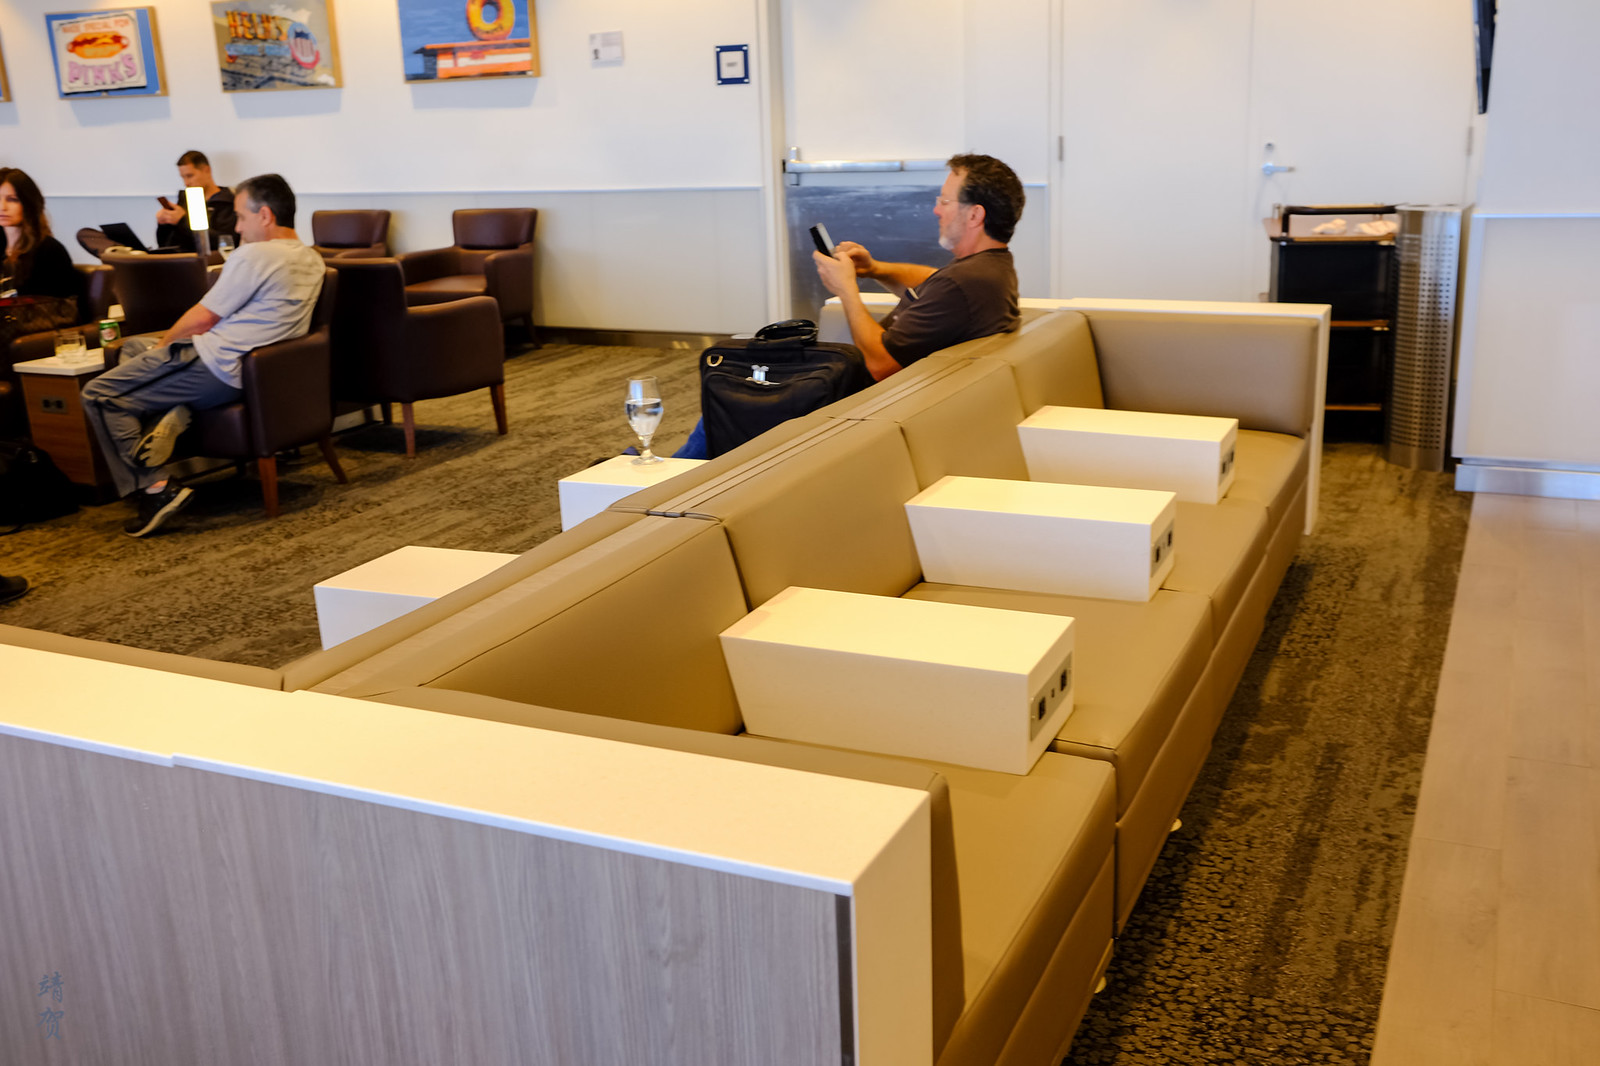 Bench seating with armrest dividers